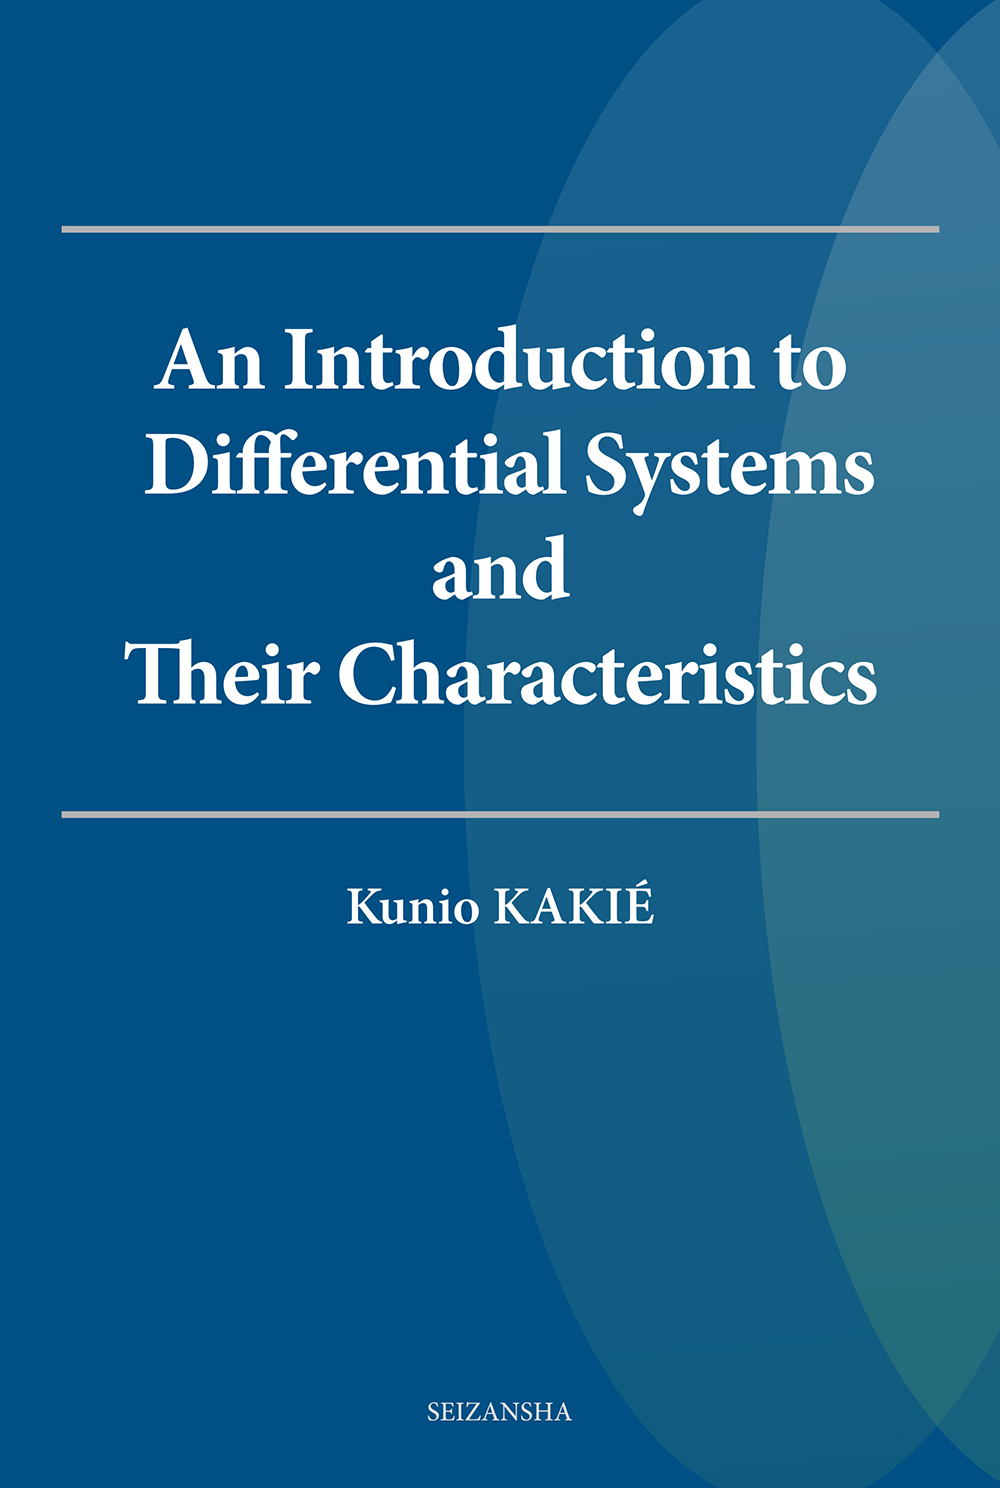 An Introduction to Differential Systems and Their Characteristics